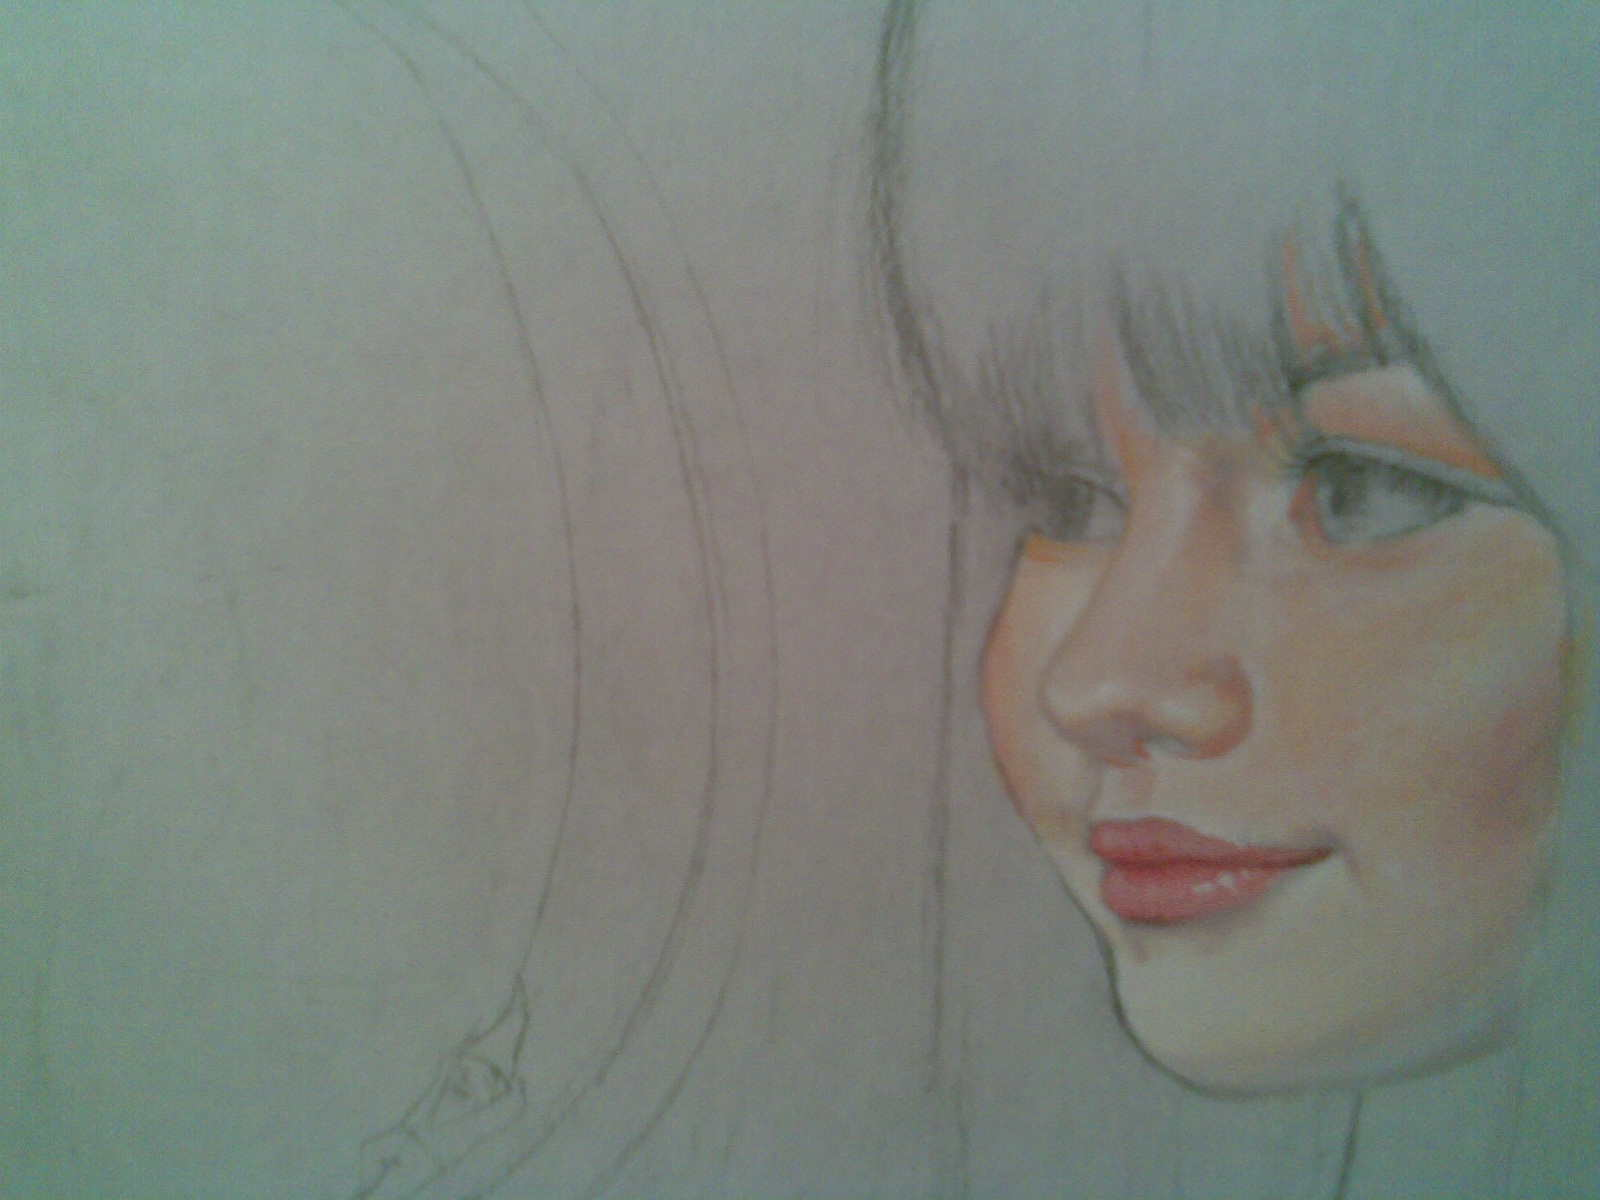 Retrato Hecho por MI de Selena Gomez FOTOS Y VIDEO!!